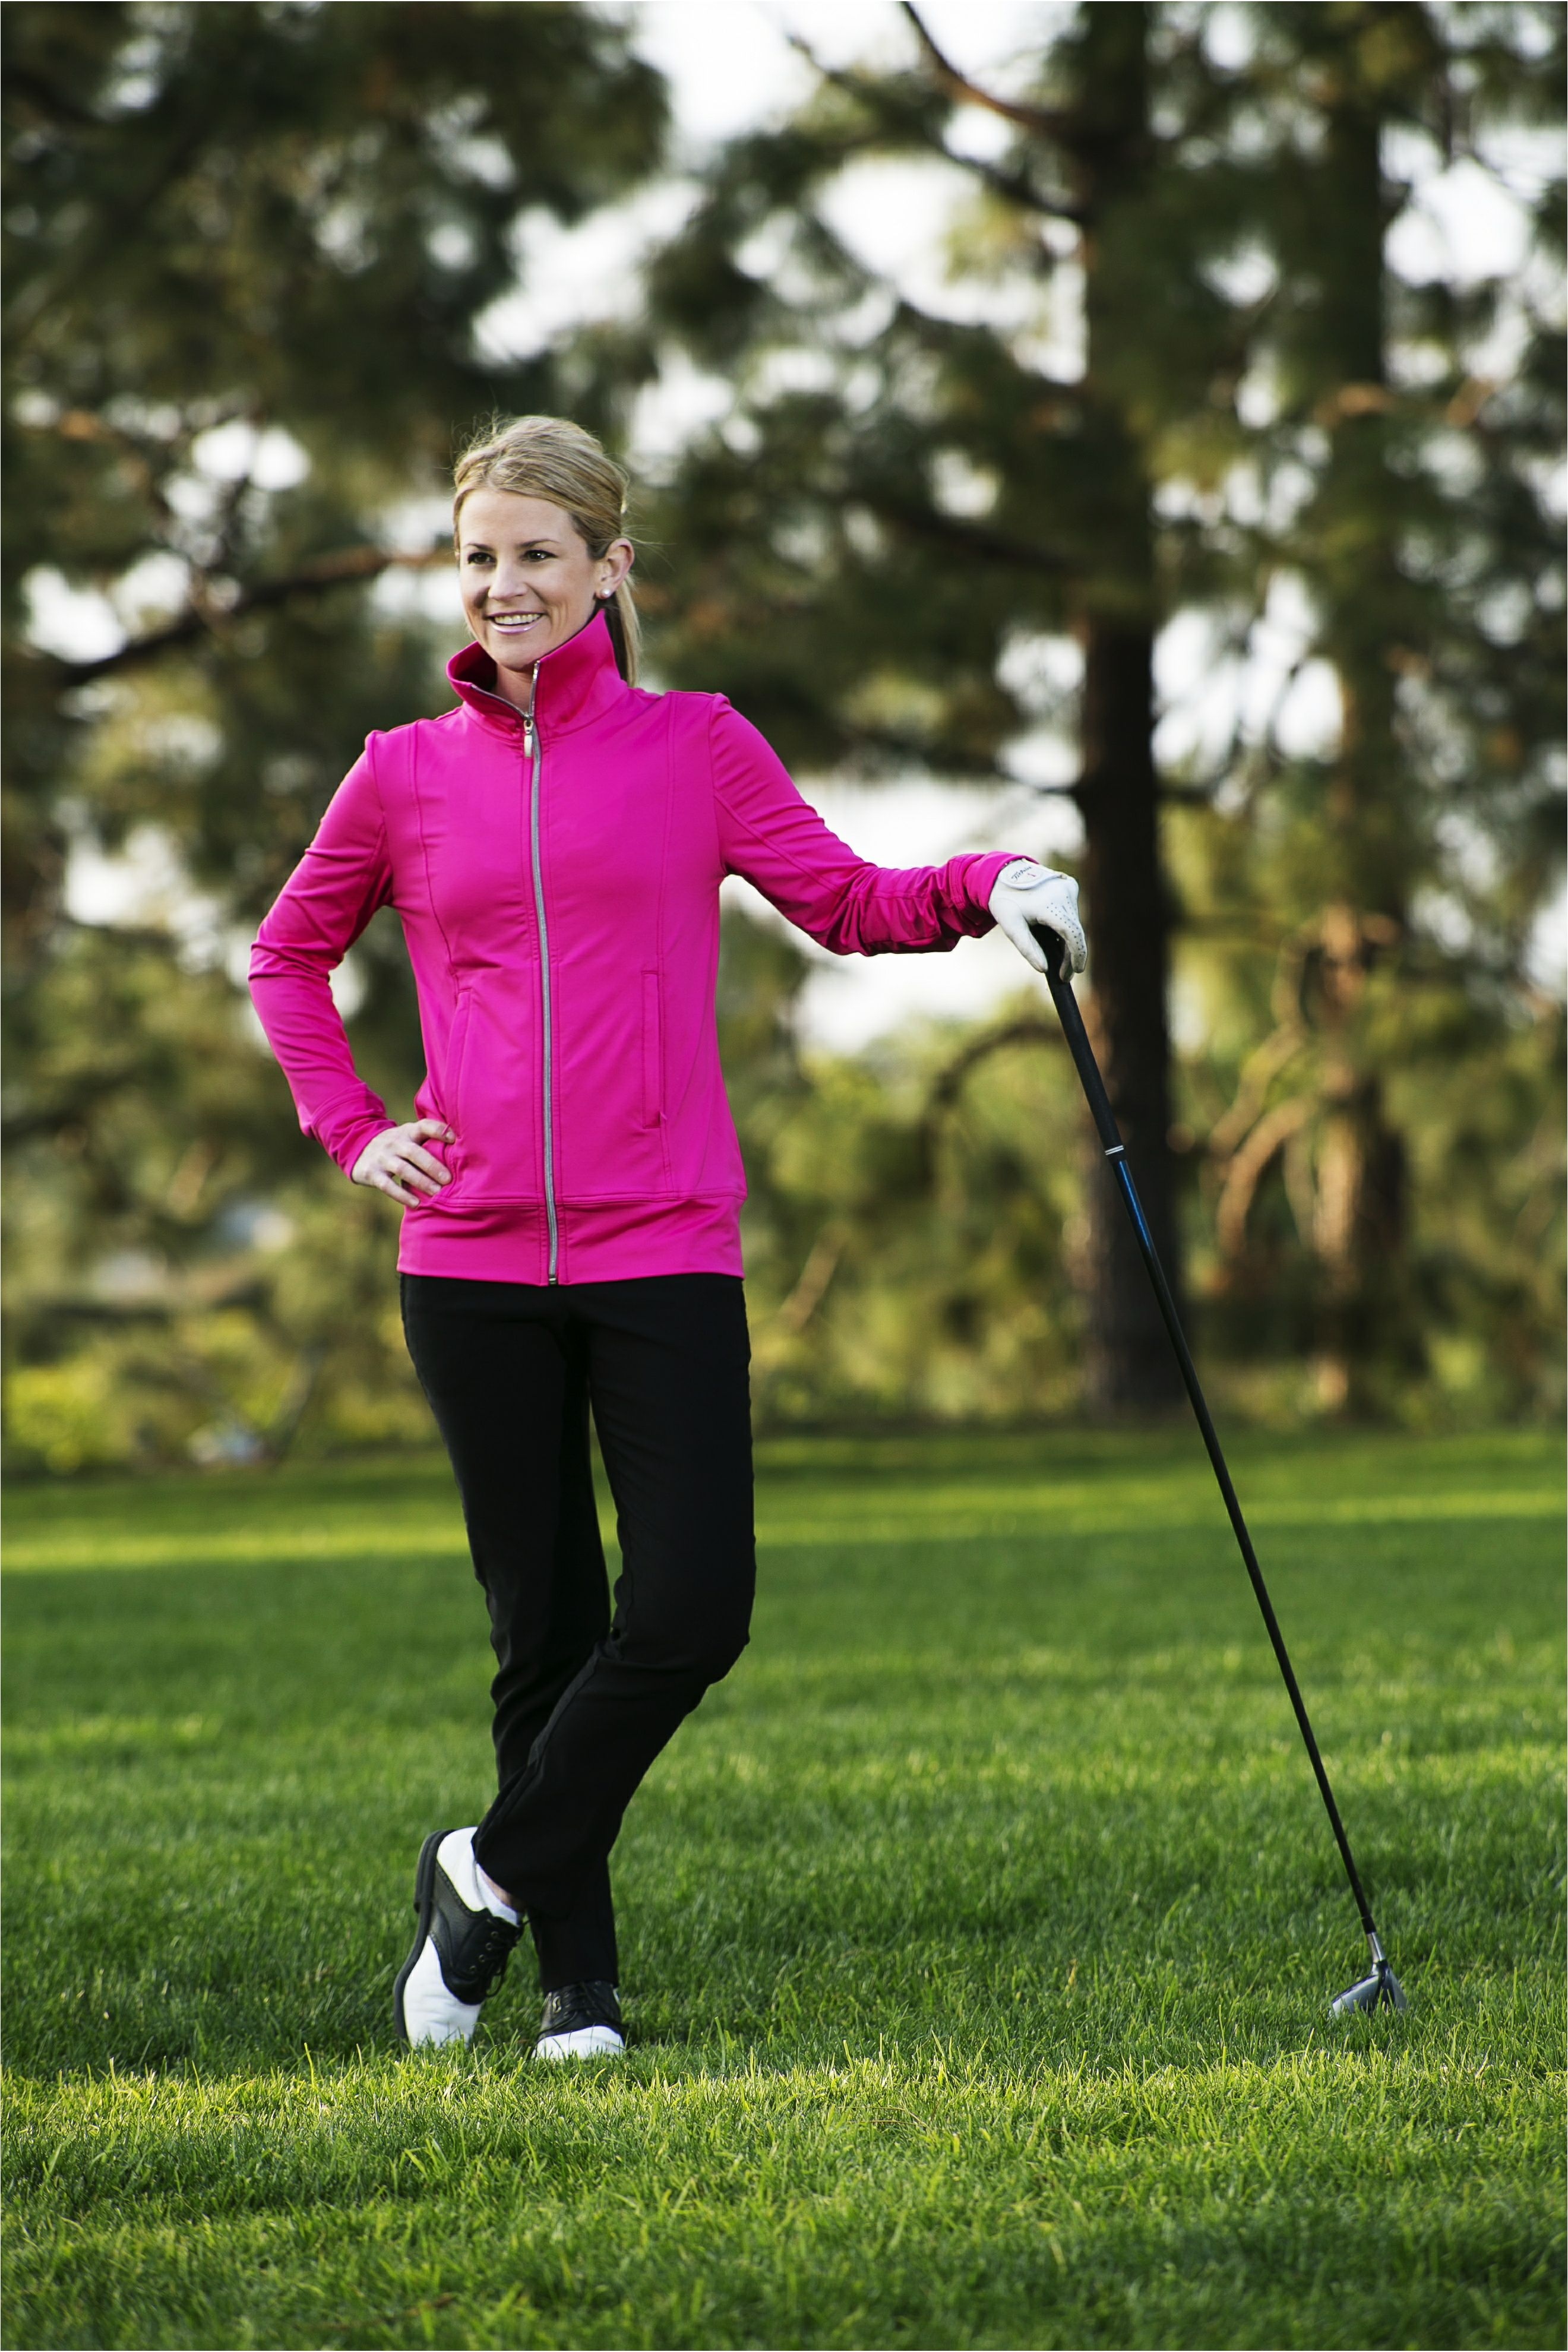 The Golfing Gear For Girls